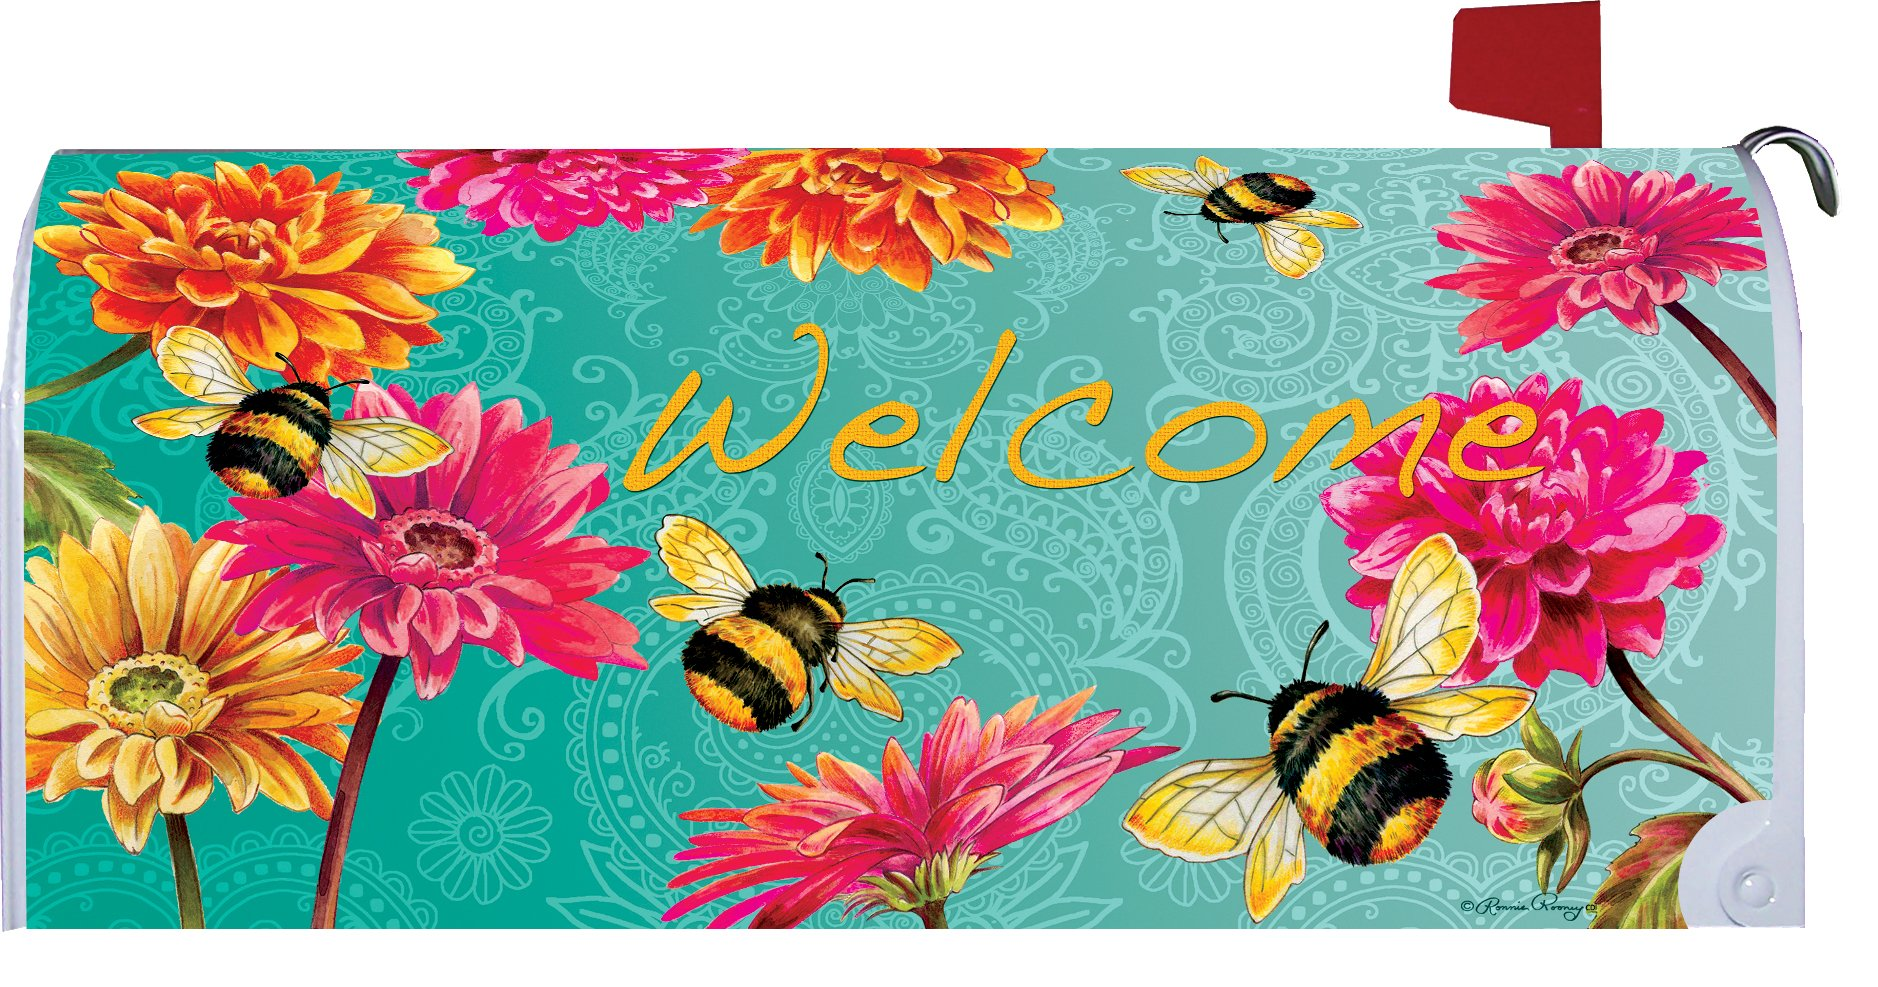 Bumblebees in the Garden - Mailbox Makover Cover - Vinyl witn Magnetic Strips for Steel Standard Rural Mailbox - Copyright, Licensed and Trademarked by Custom Decor Inc. by Custom Decor (Image #1)